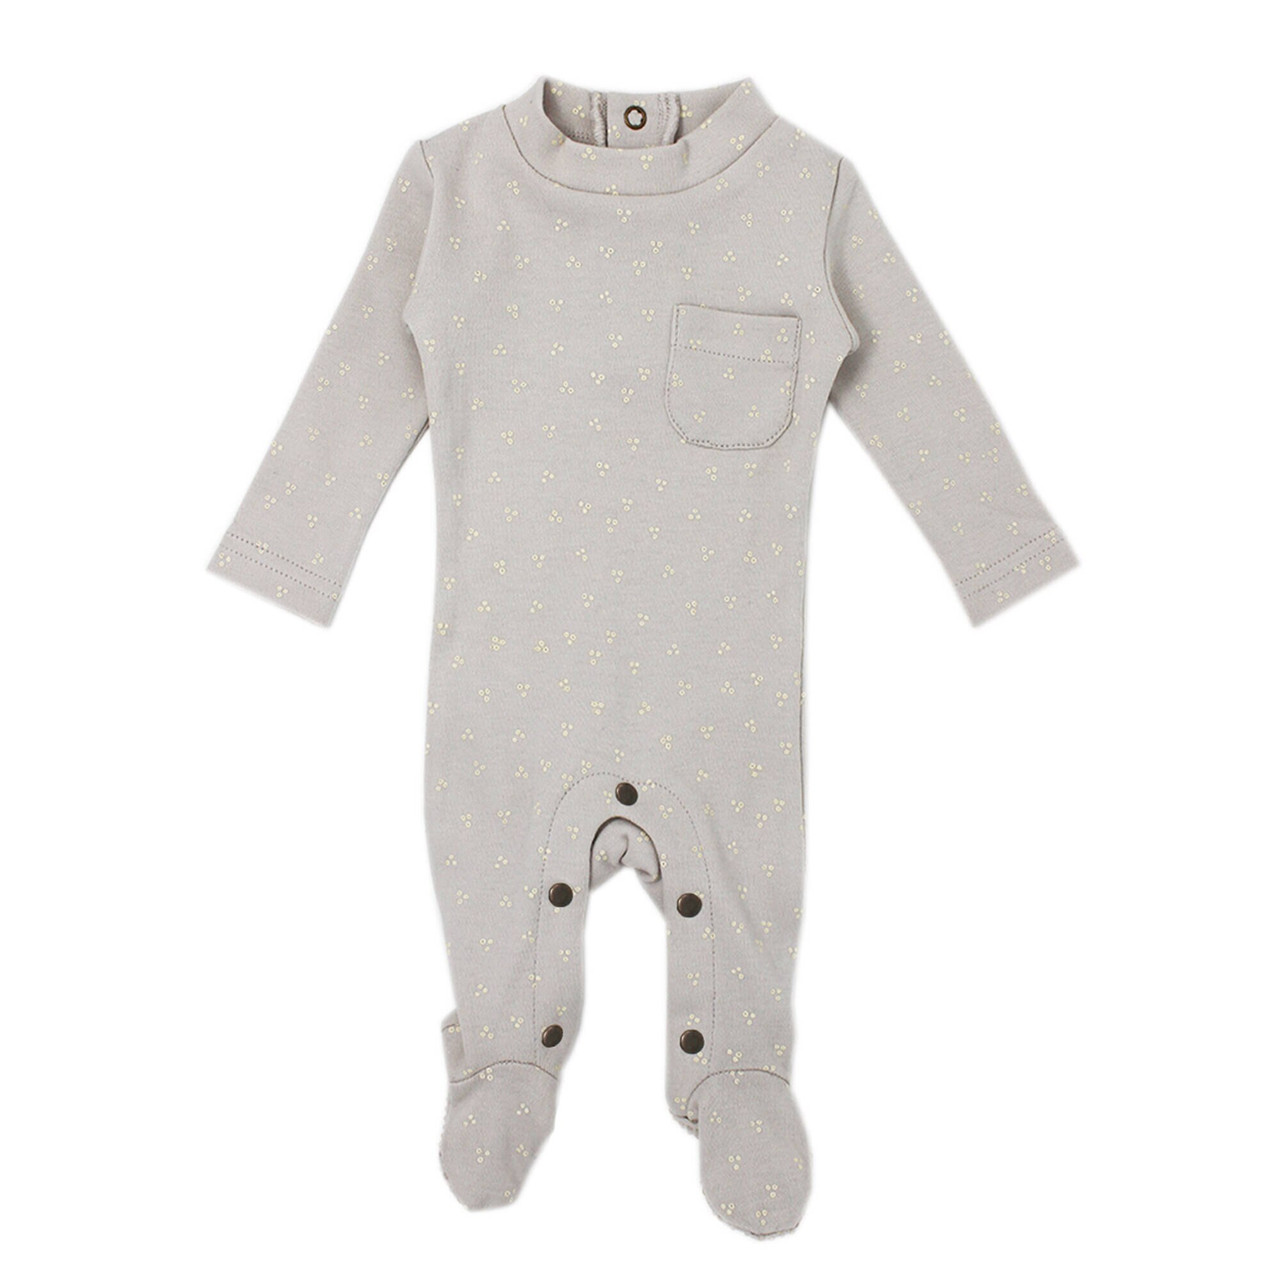 Organic Mock-Neck Overall in Pebble Dots, Flat